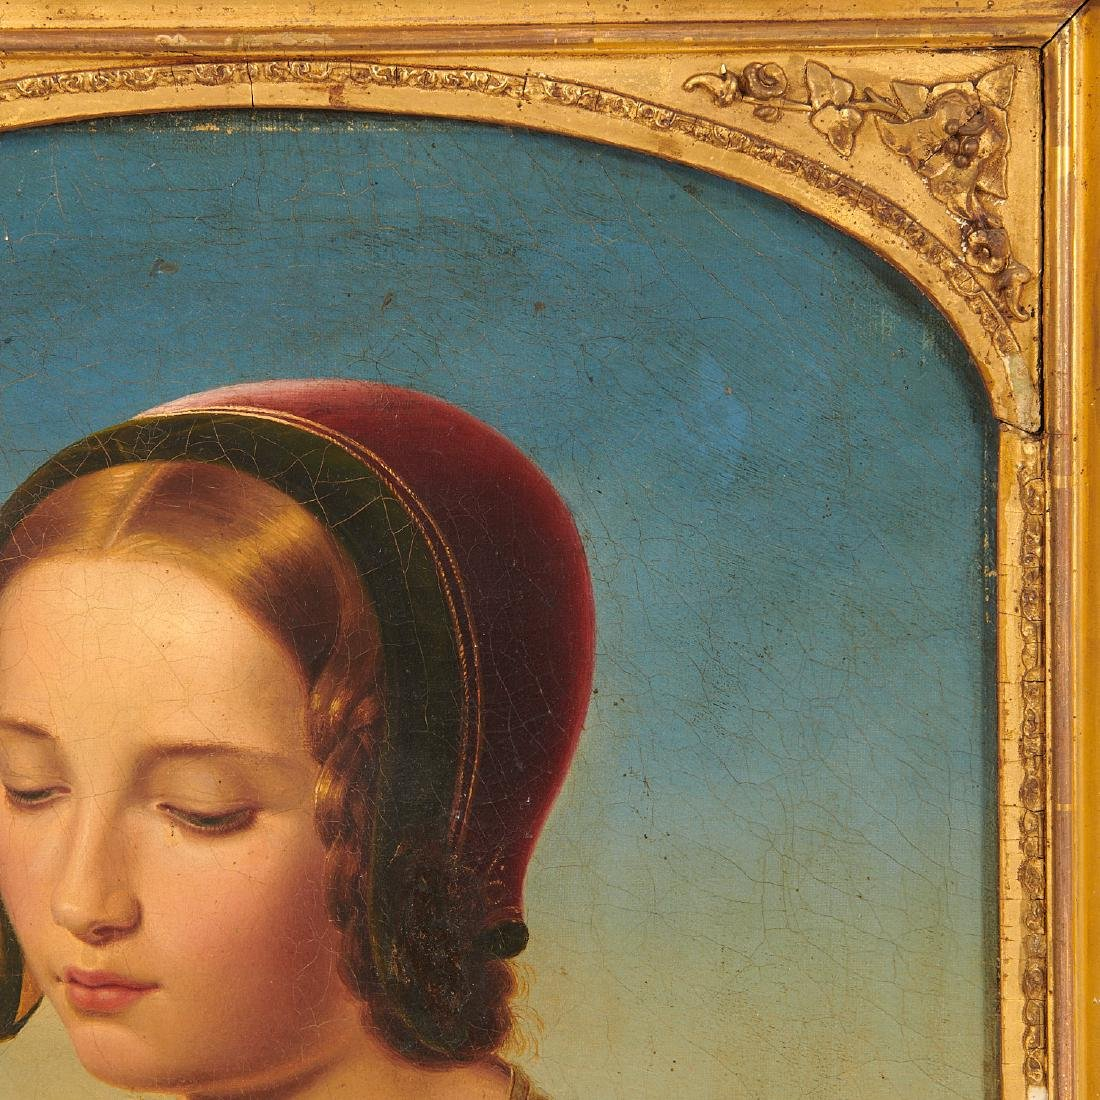 Giovanni Bellini (manner of), painting - 4